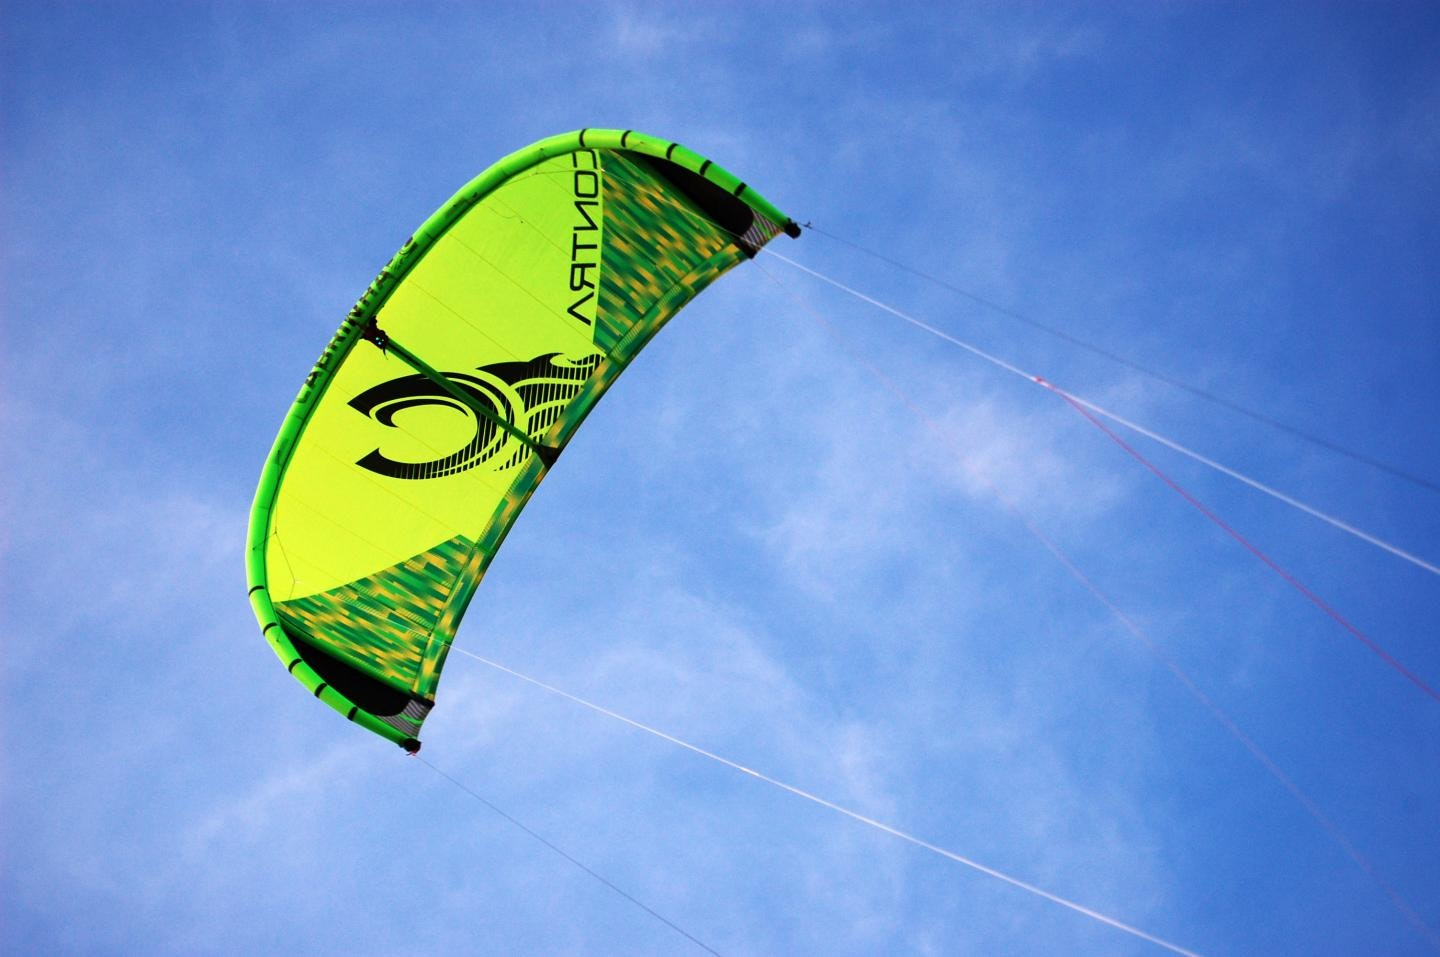 The Future of Wind Energy May Involve These Really, Really Big Kites: Video